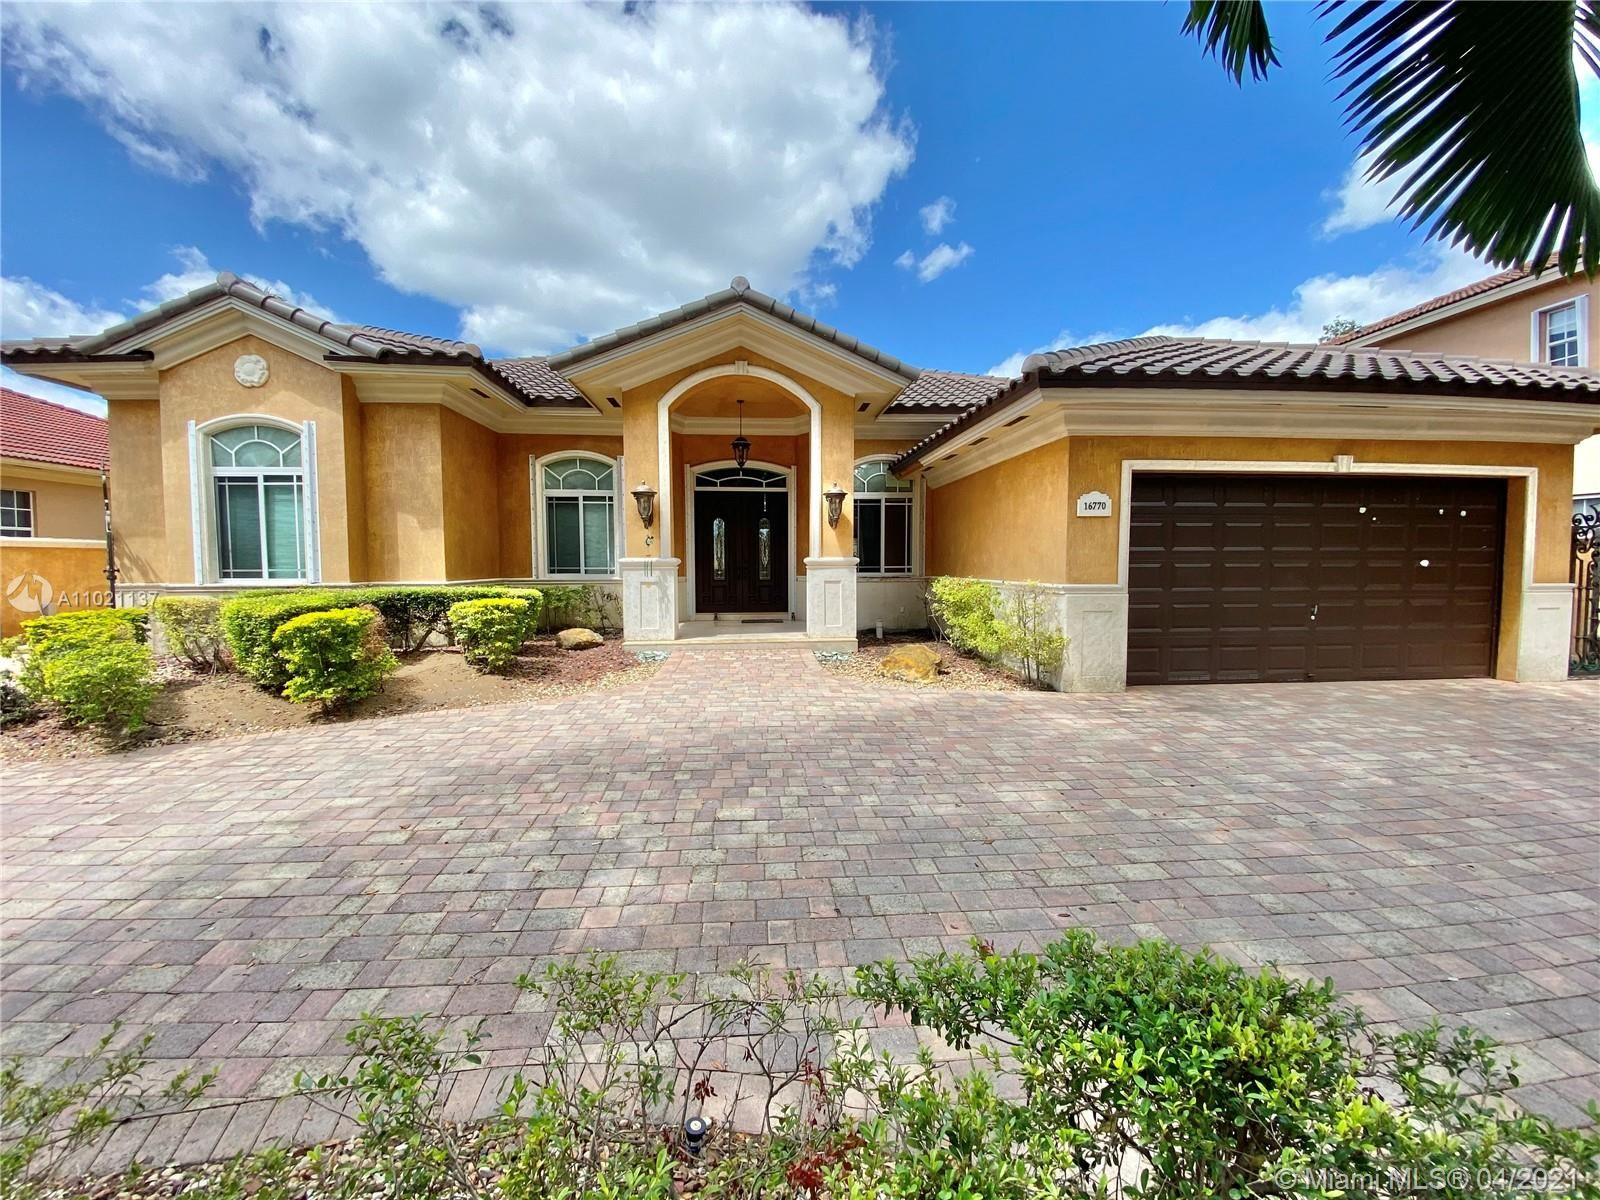 16770 NW 86th Ct, Miami Lakes, FL 33016 - #: A11021137